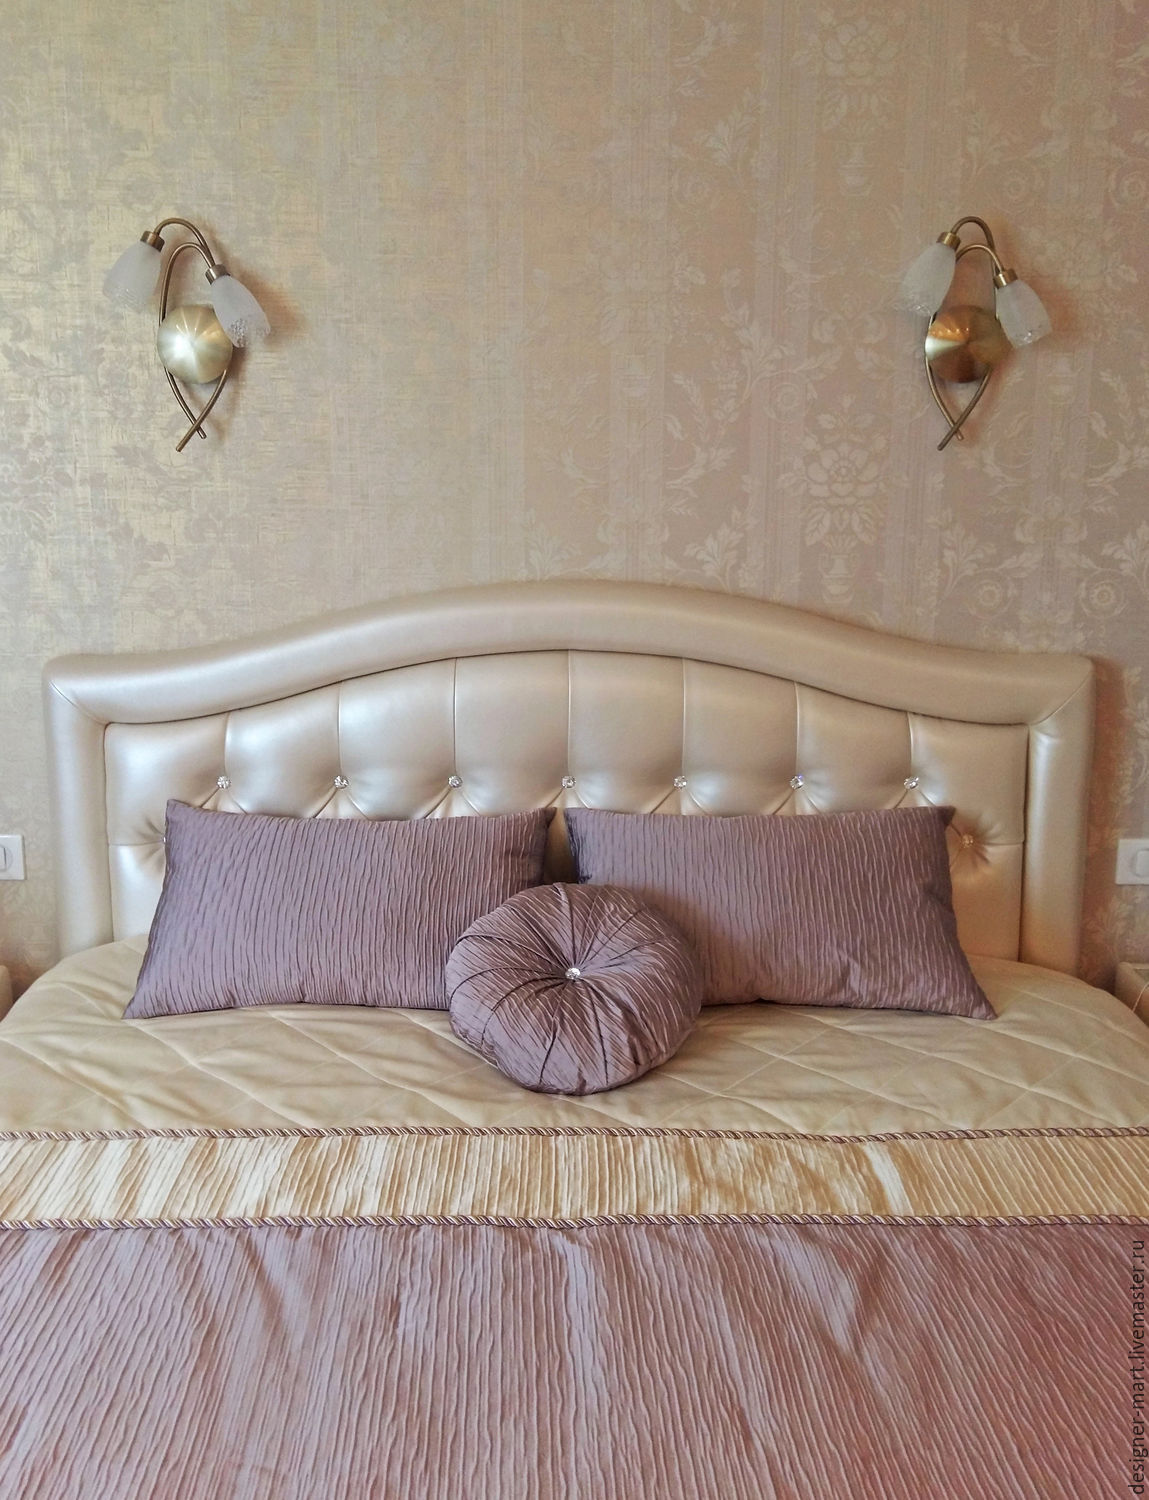 Lilac bedroom sets, Curtains1, Moscow,  Фото №1